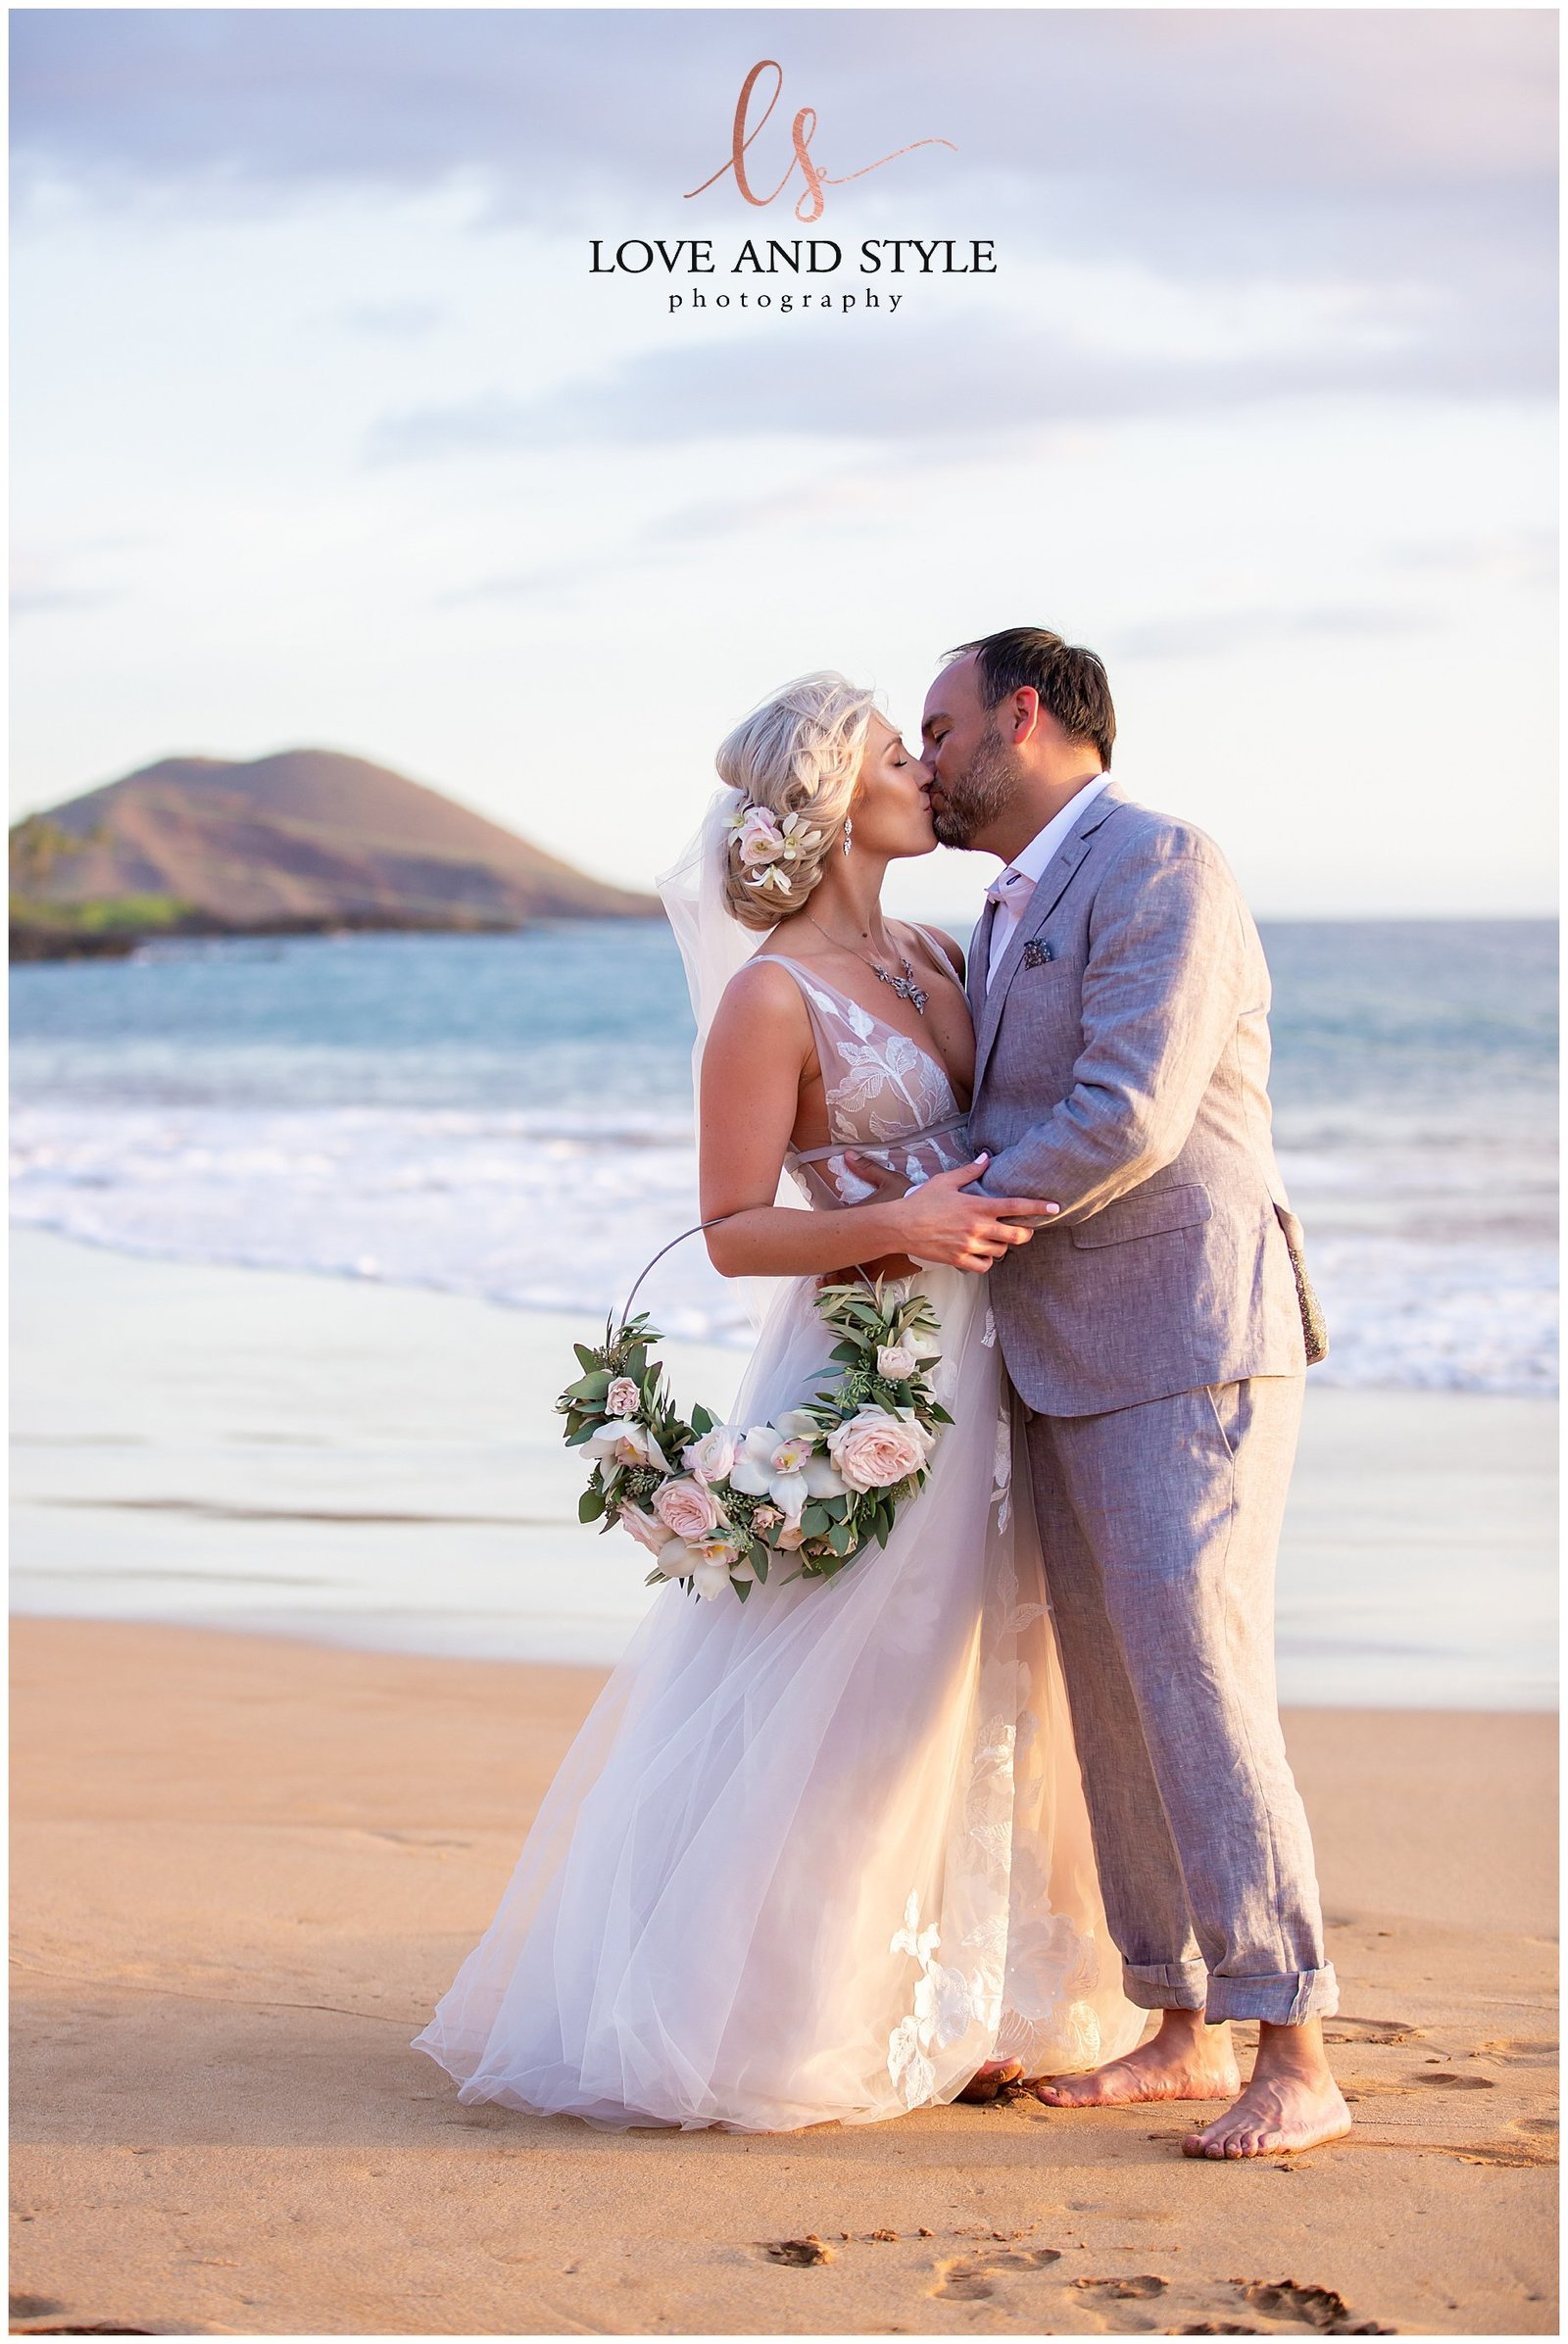 Bride and groom kissing on the beach with ocean and sunset background